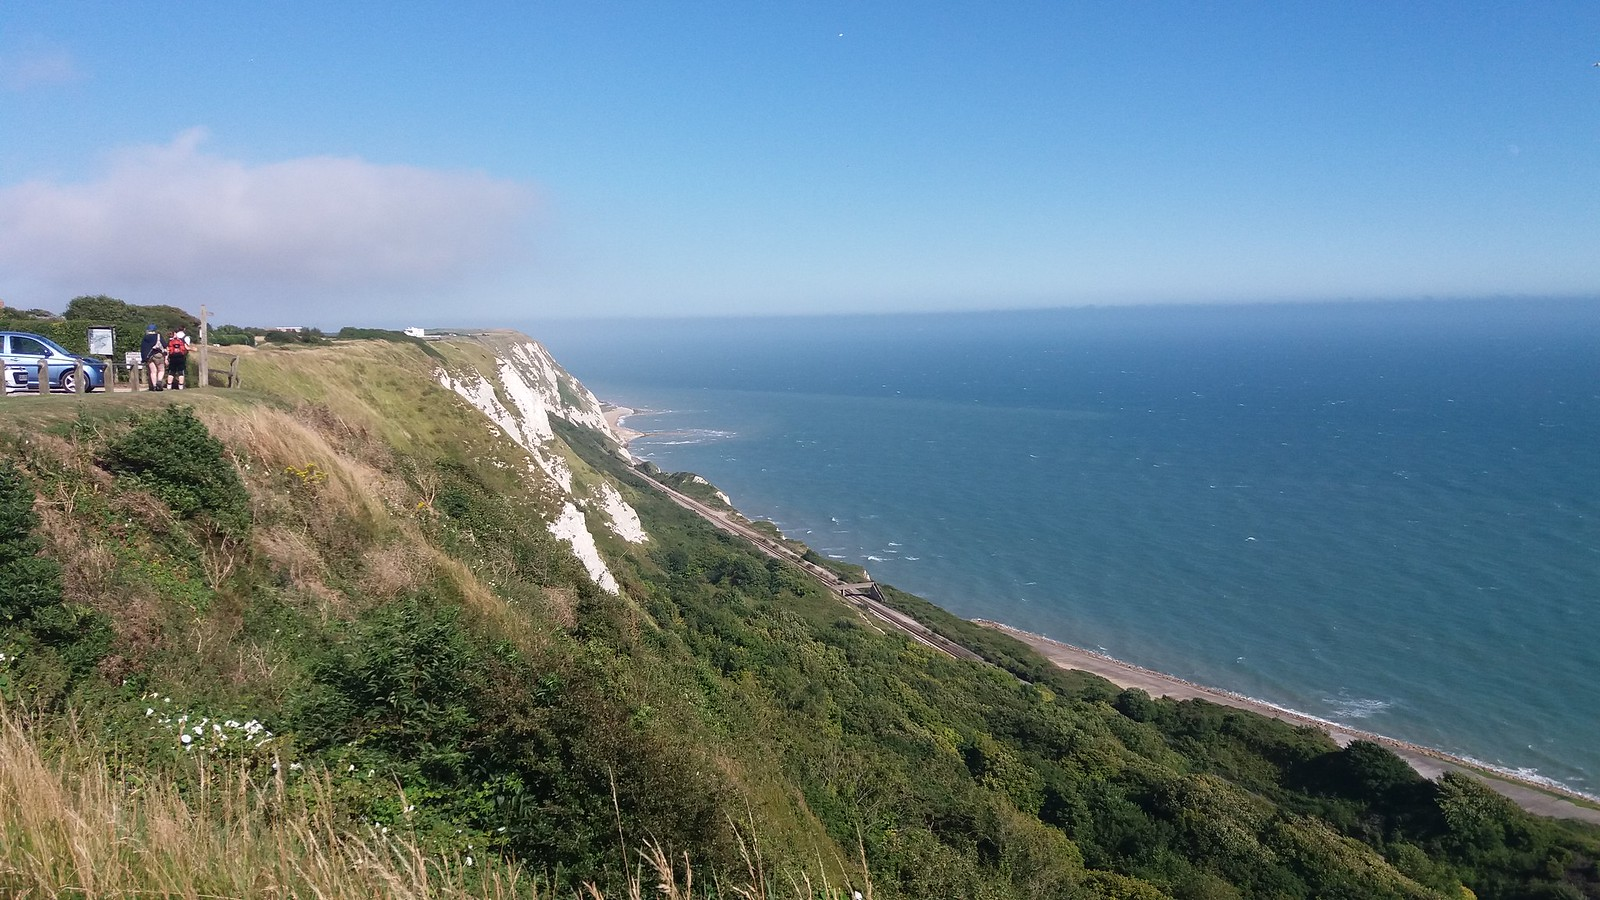 20160812_162834 View down over Folkestone Warren